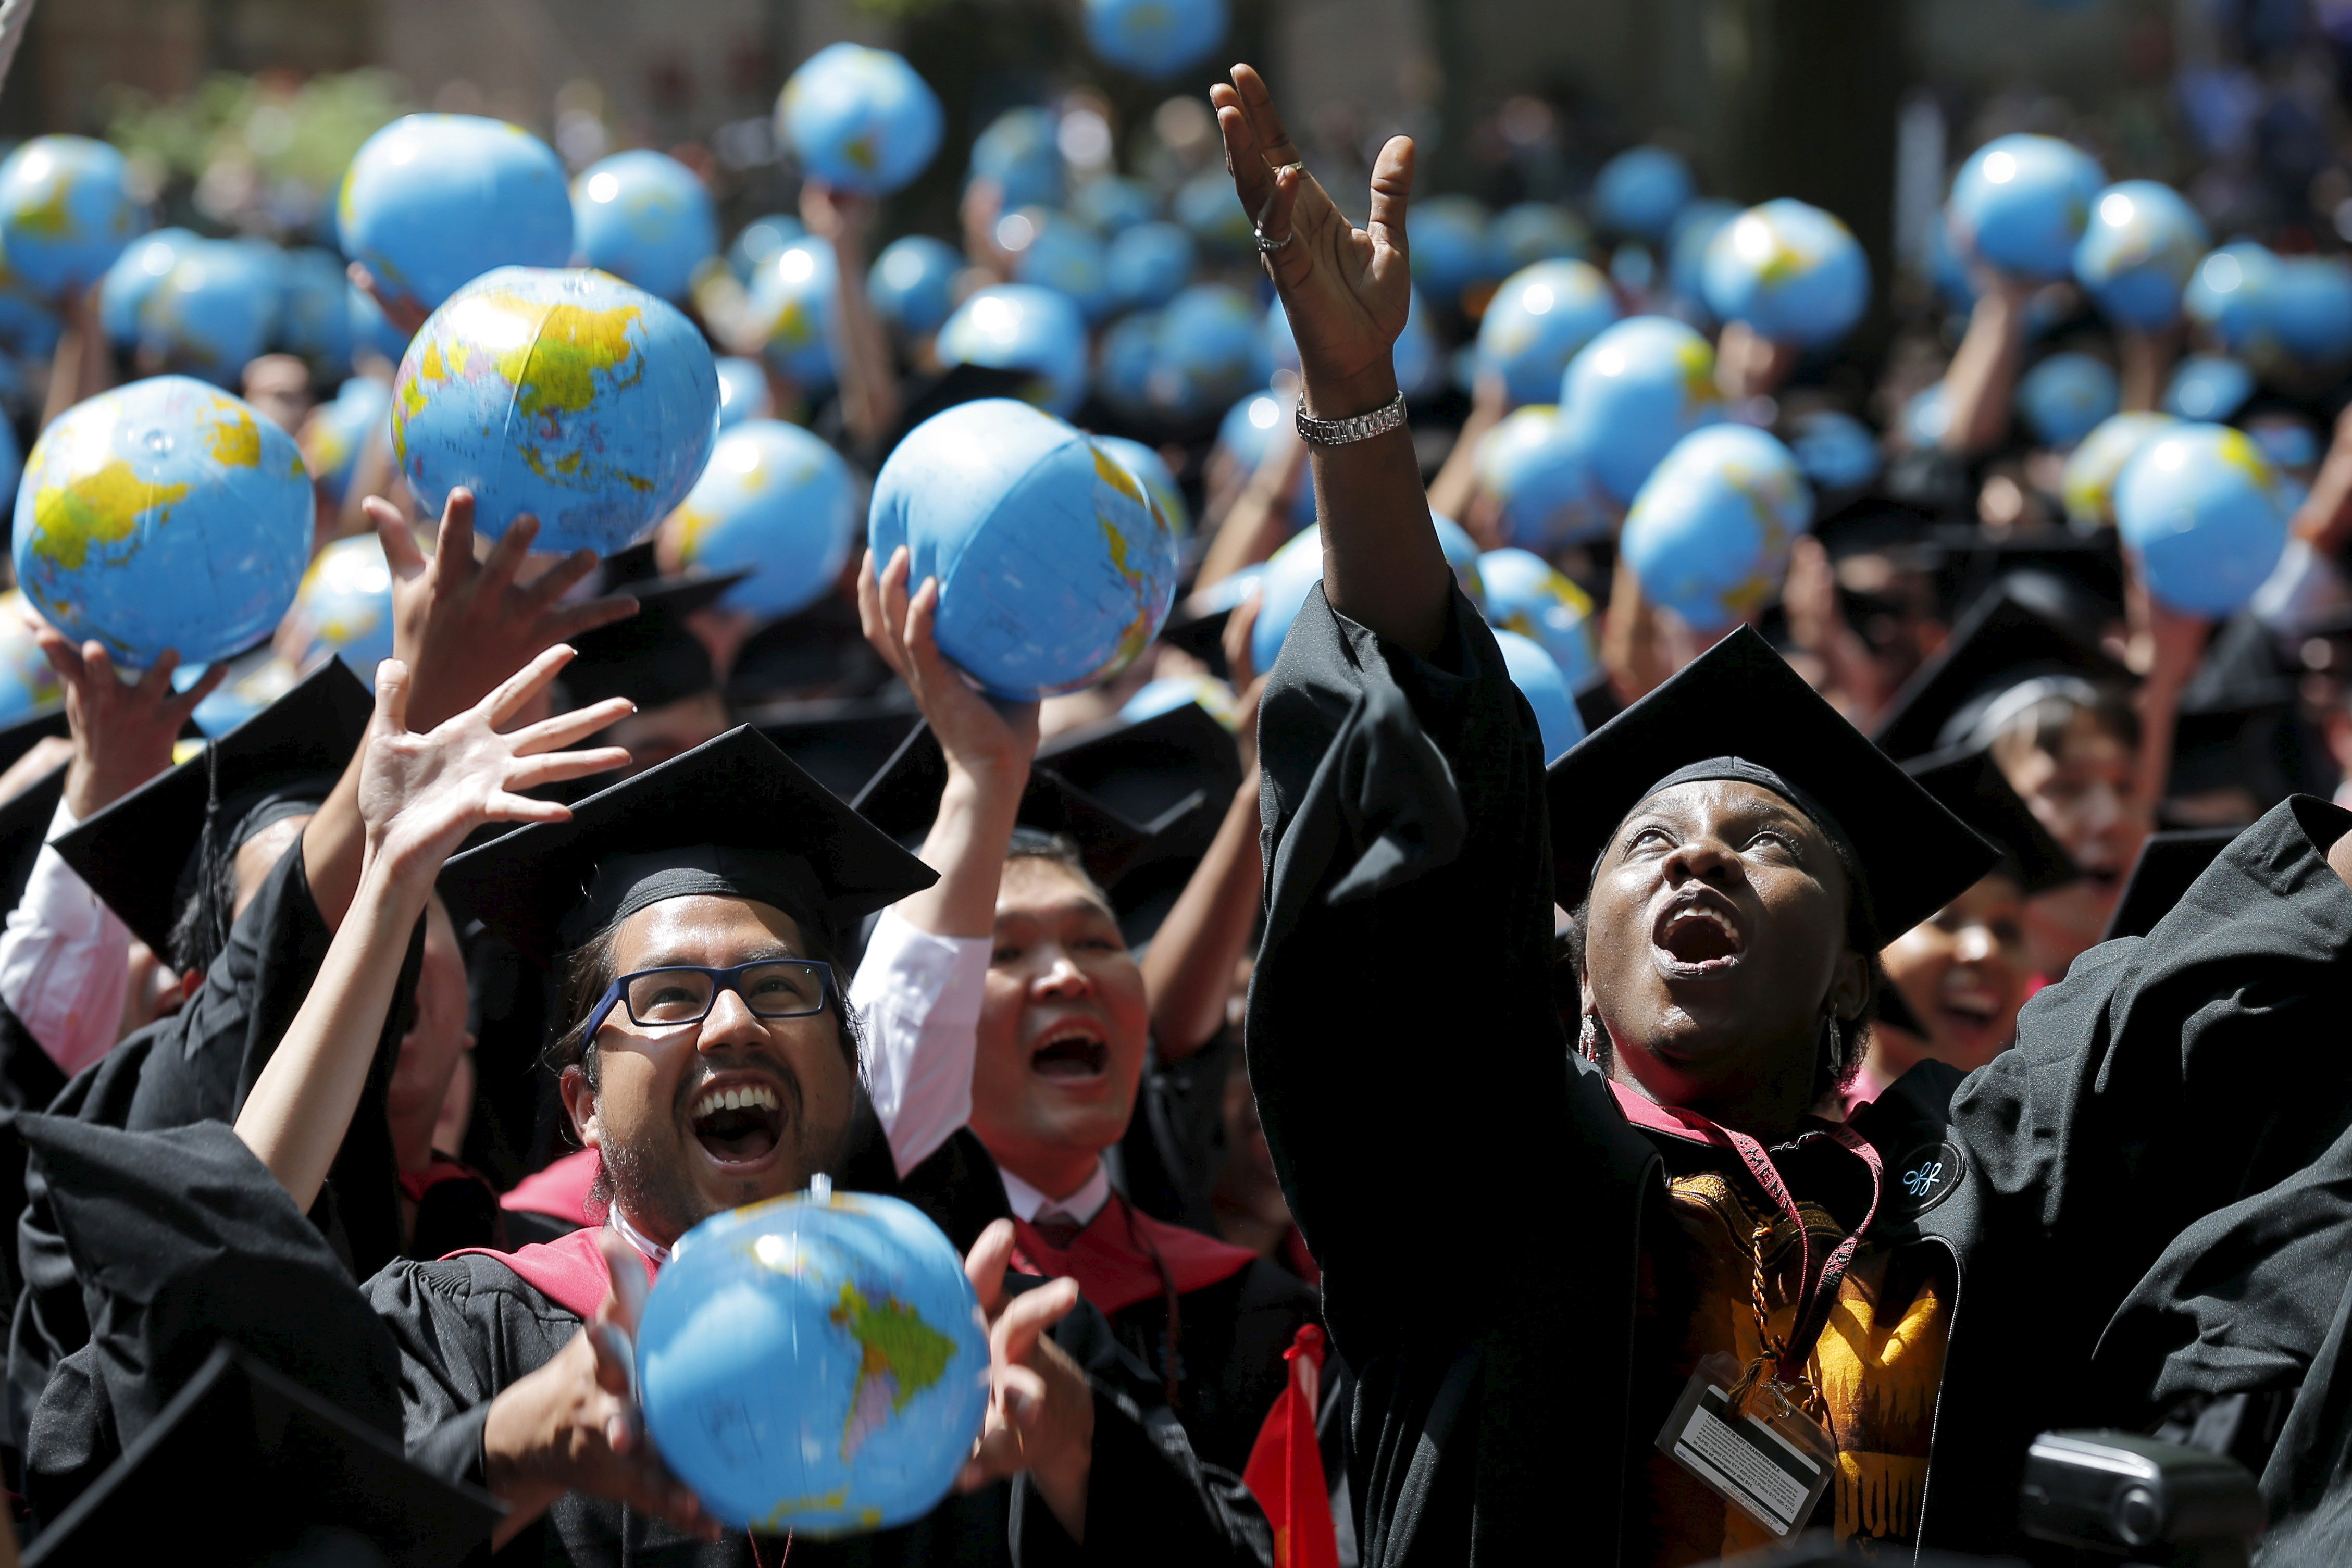 Olufunke Michaels (R) and her classmates celebrate after receiving their degrees from the John F. Kennedy School of Government during the 364th Commencement Exercises at Harvard University in Cambridge, Massachusetts May 28, 2015.    REUTERS/Brian Snyder      TPX IMAGES OF THE DAY      - GF10000110401